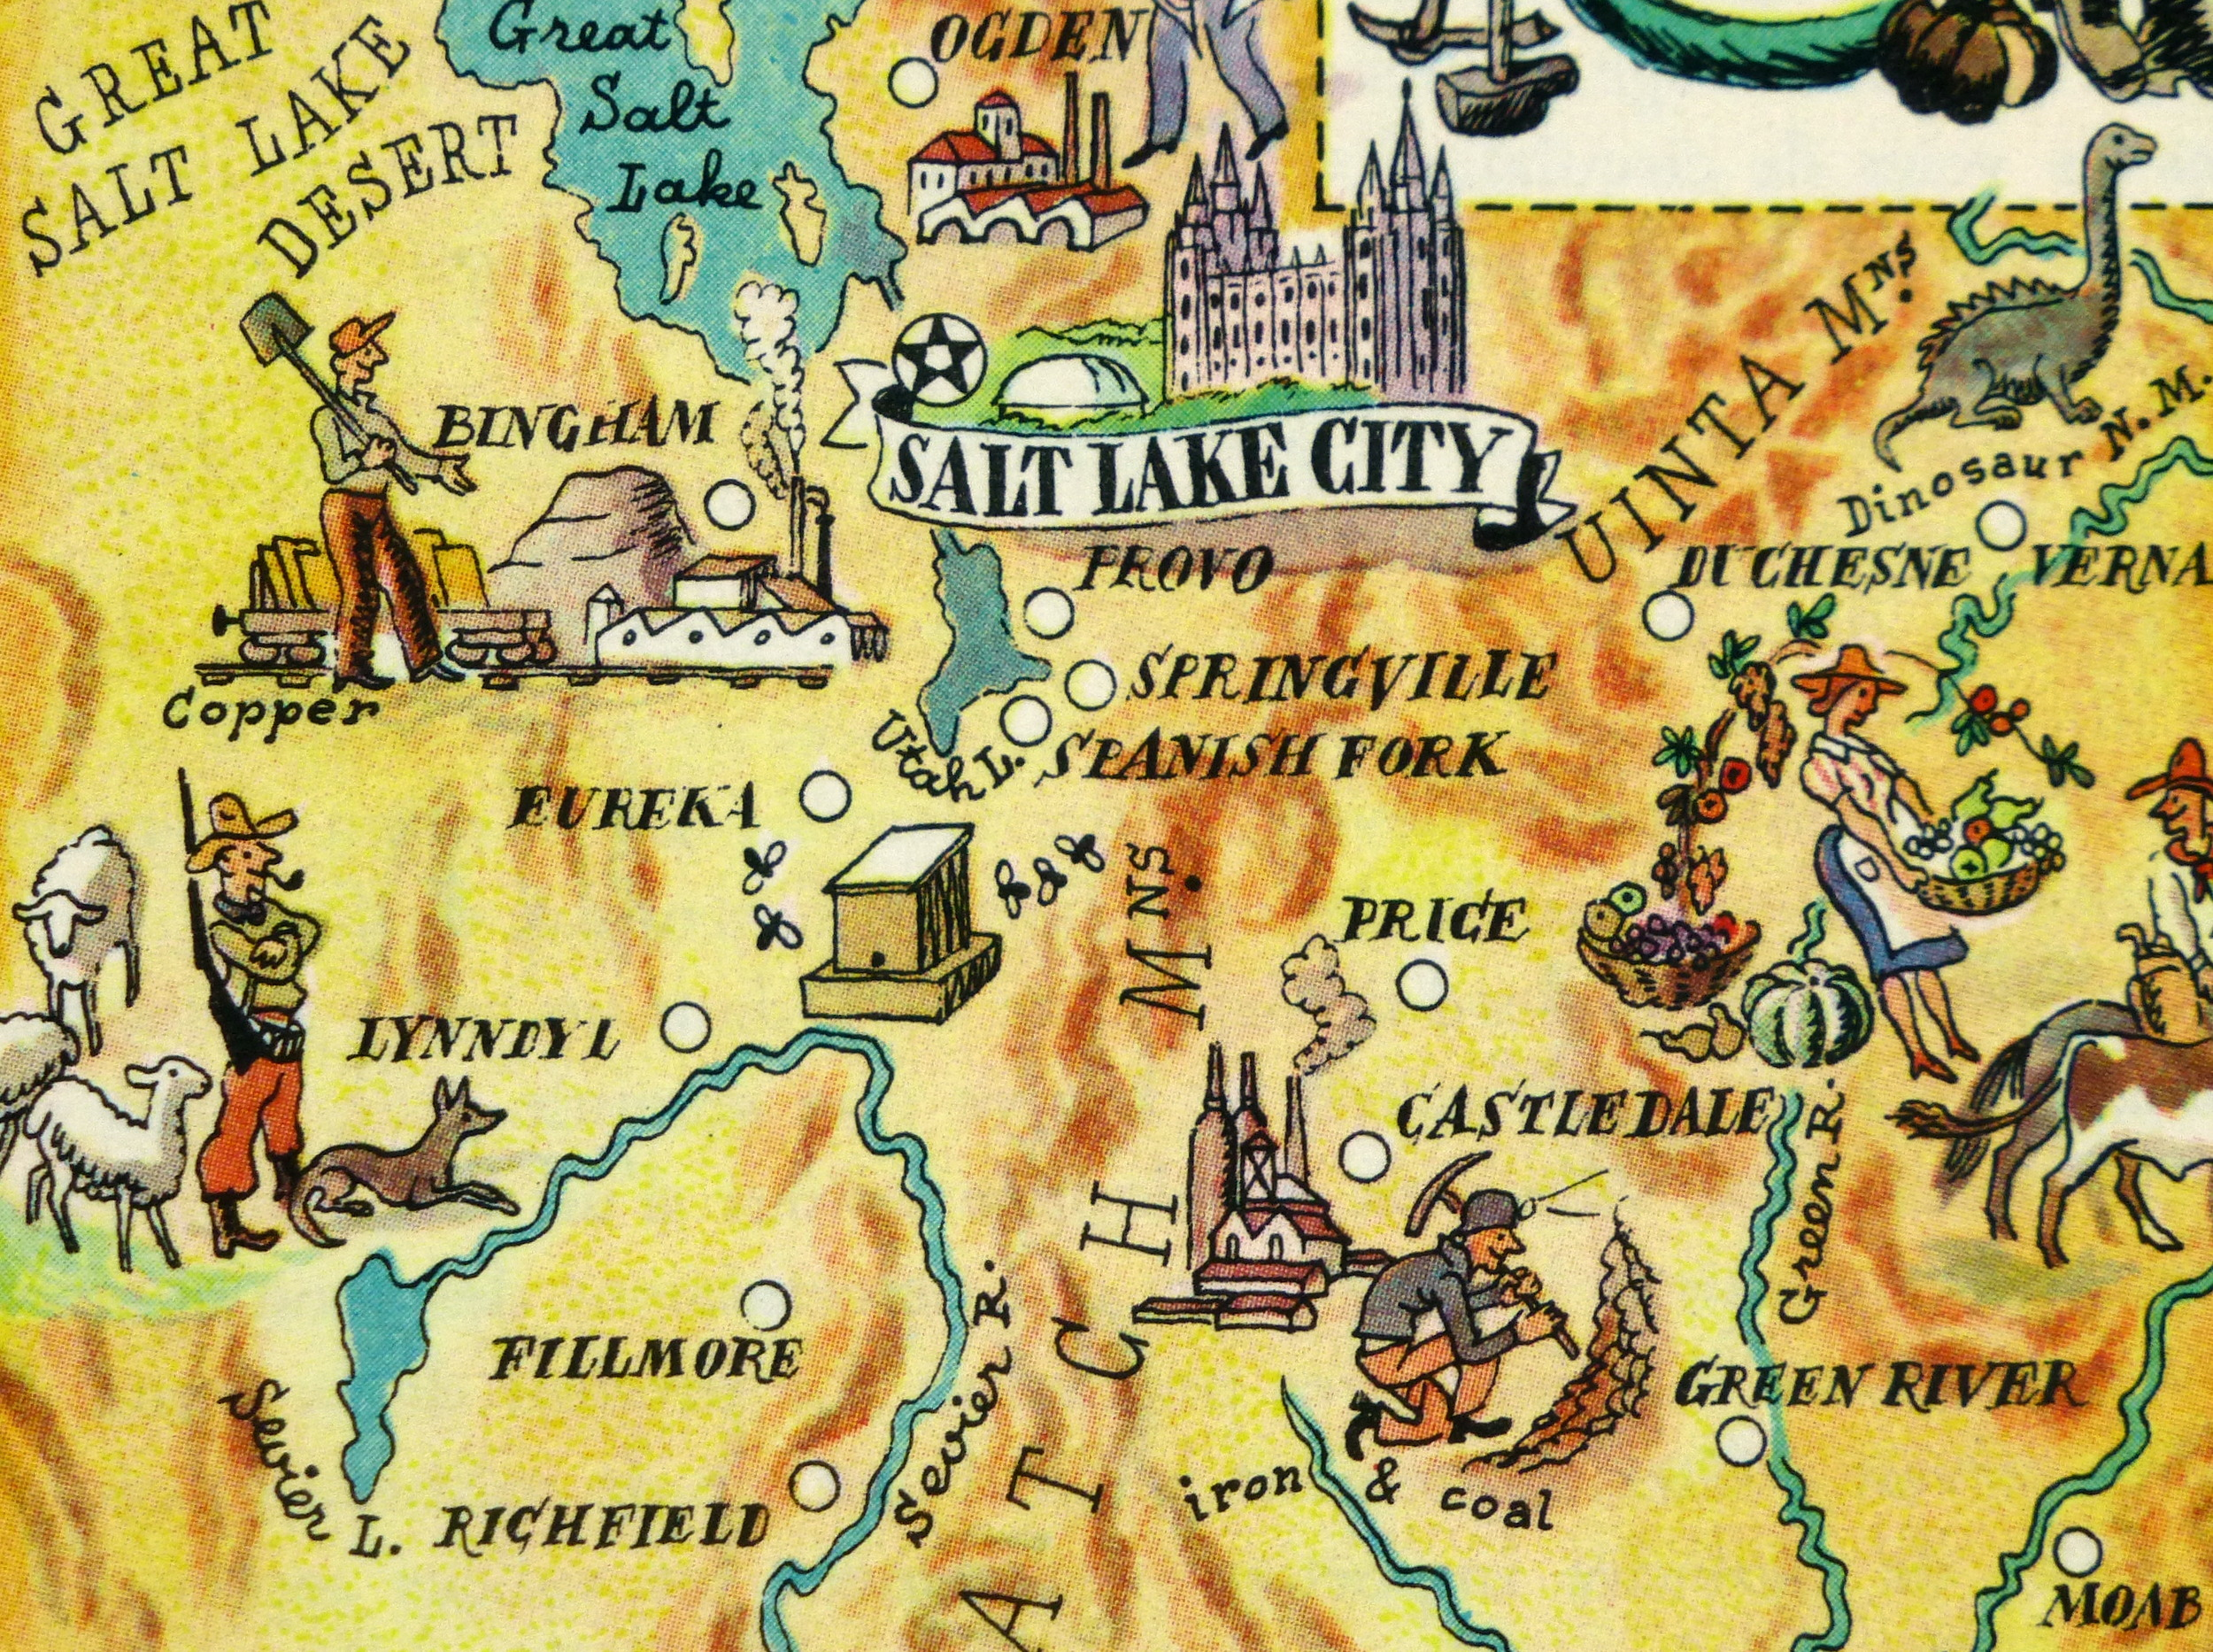 Utah Pictorial Map, 1946-detail-6245K